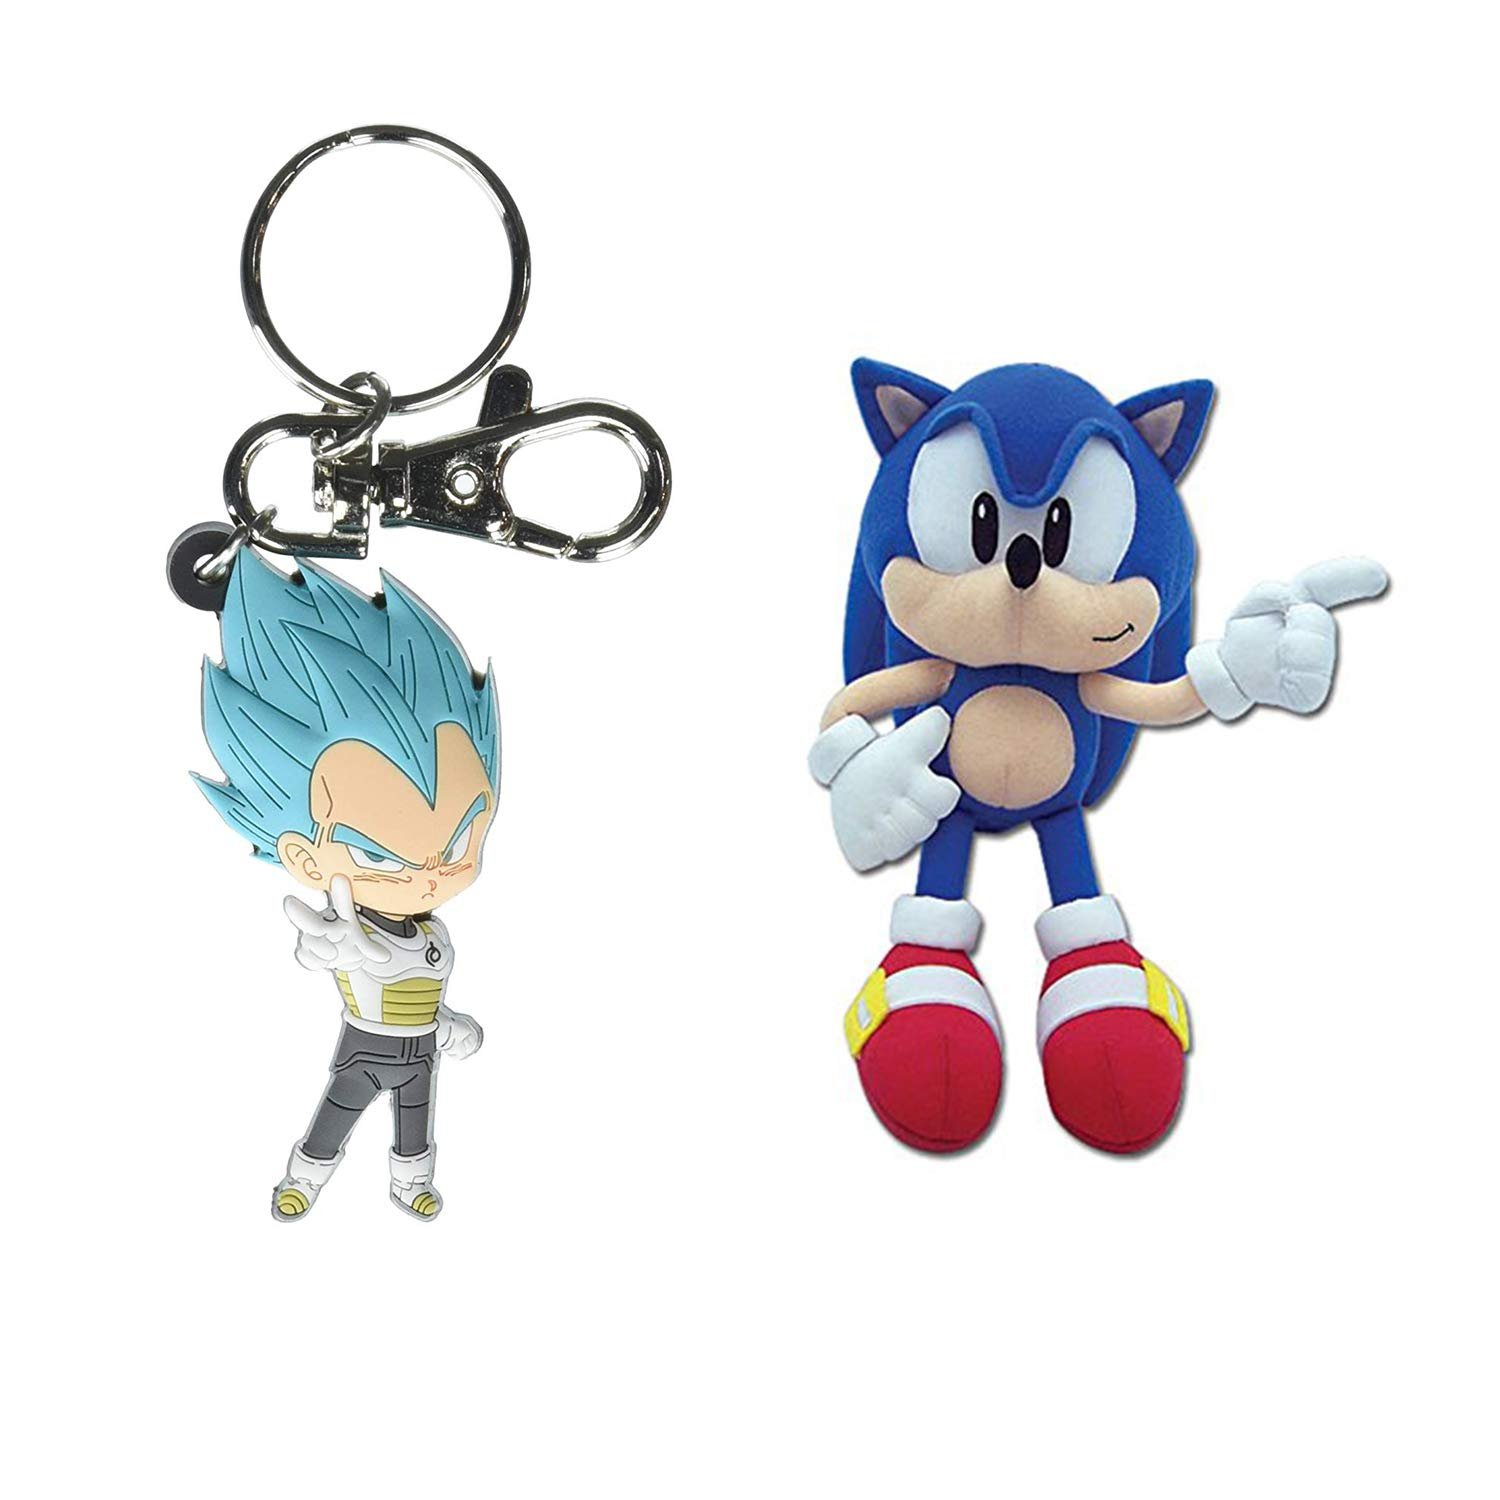 BUNDLE Sonic The Hedgehog: Classic Sonic 9'' Plush with Additional Item by Great Eastern